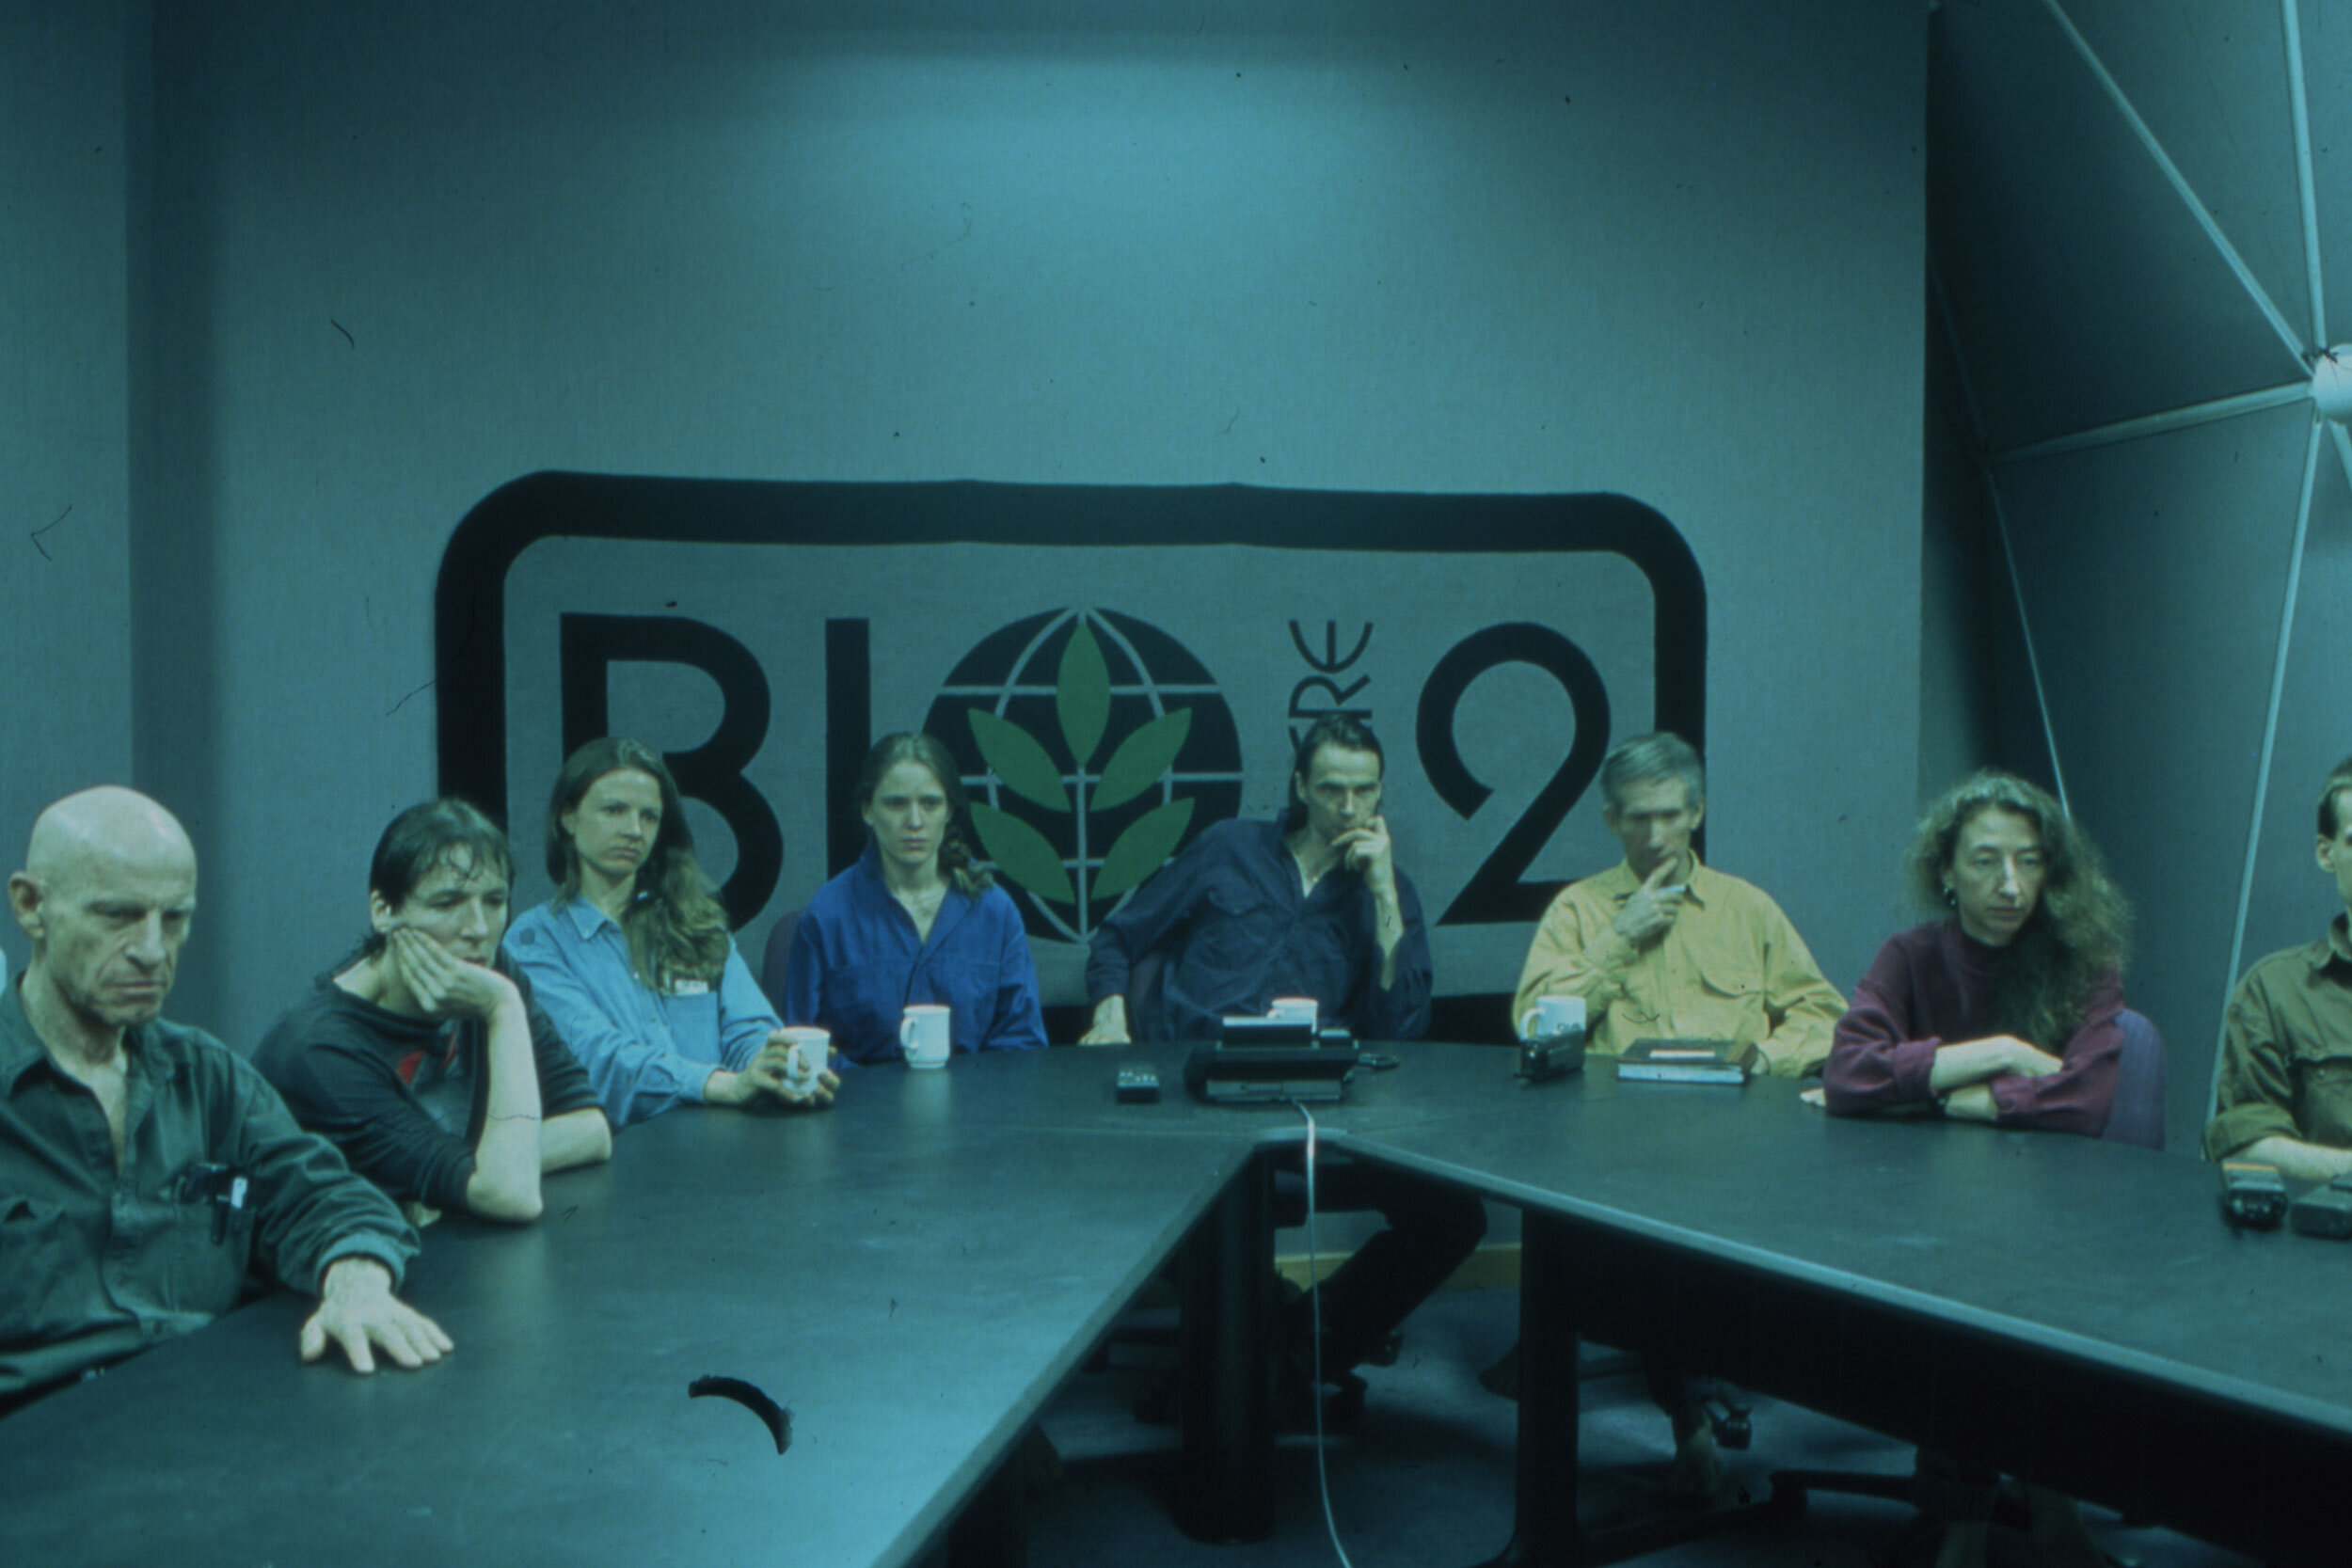 8 biospherians during a conference call